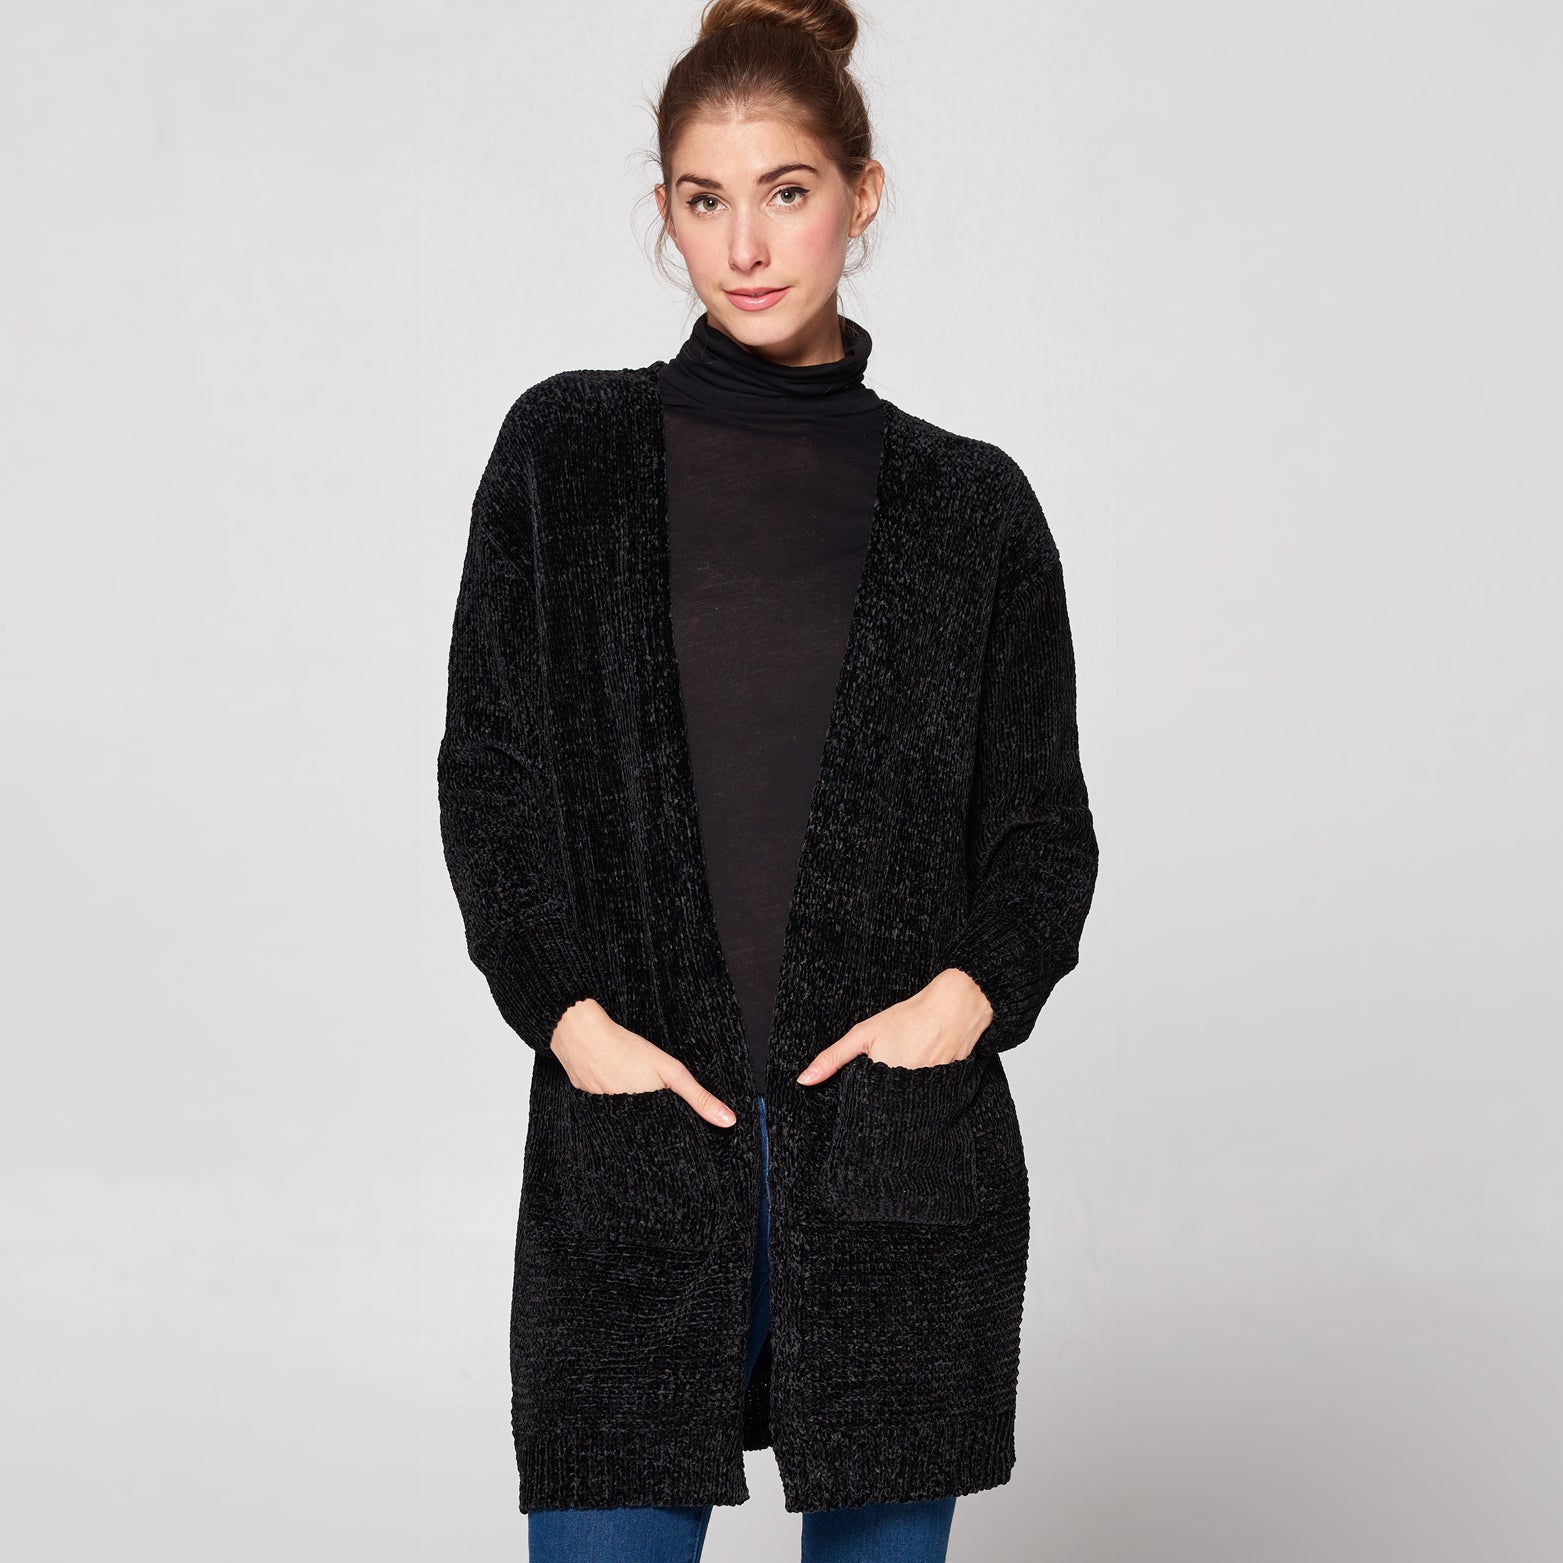 Chenille Knit Cozy Cardigan